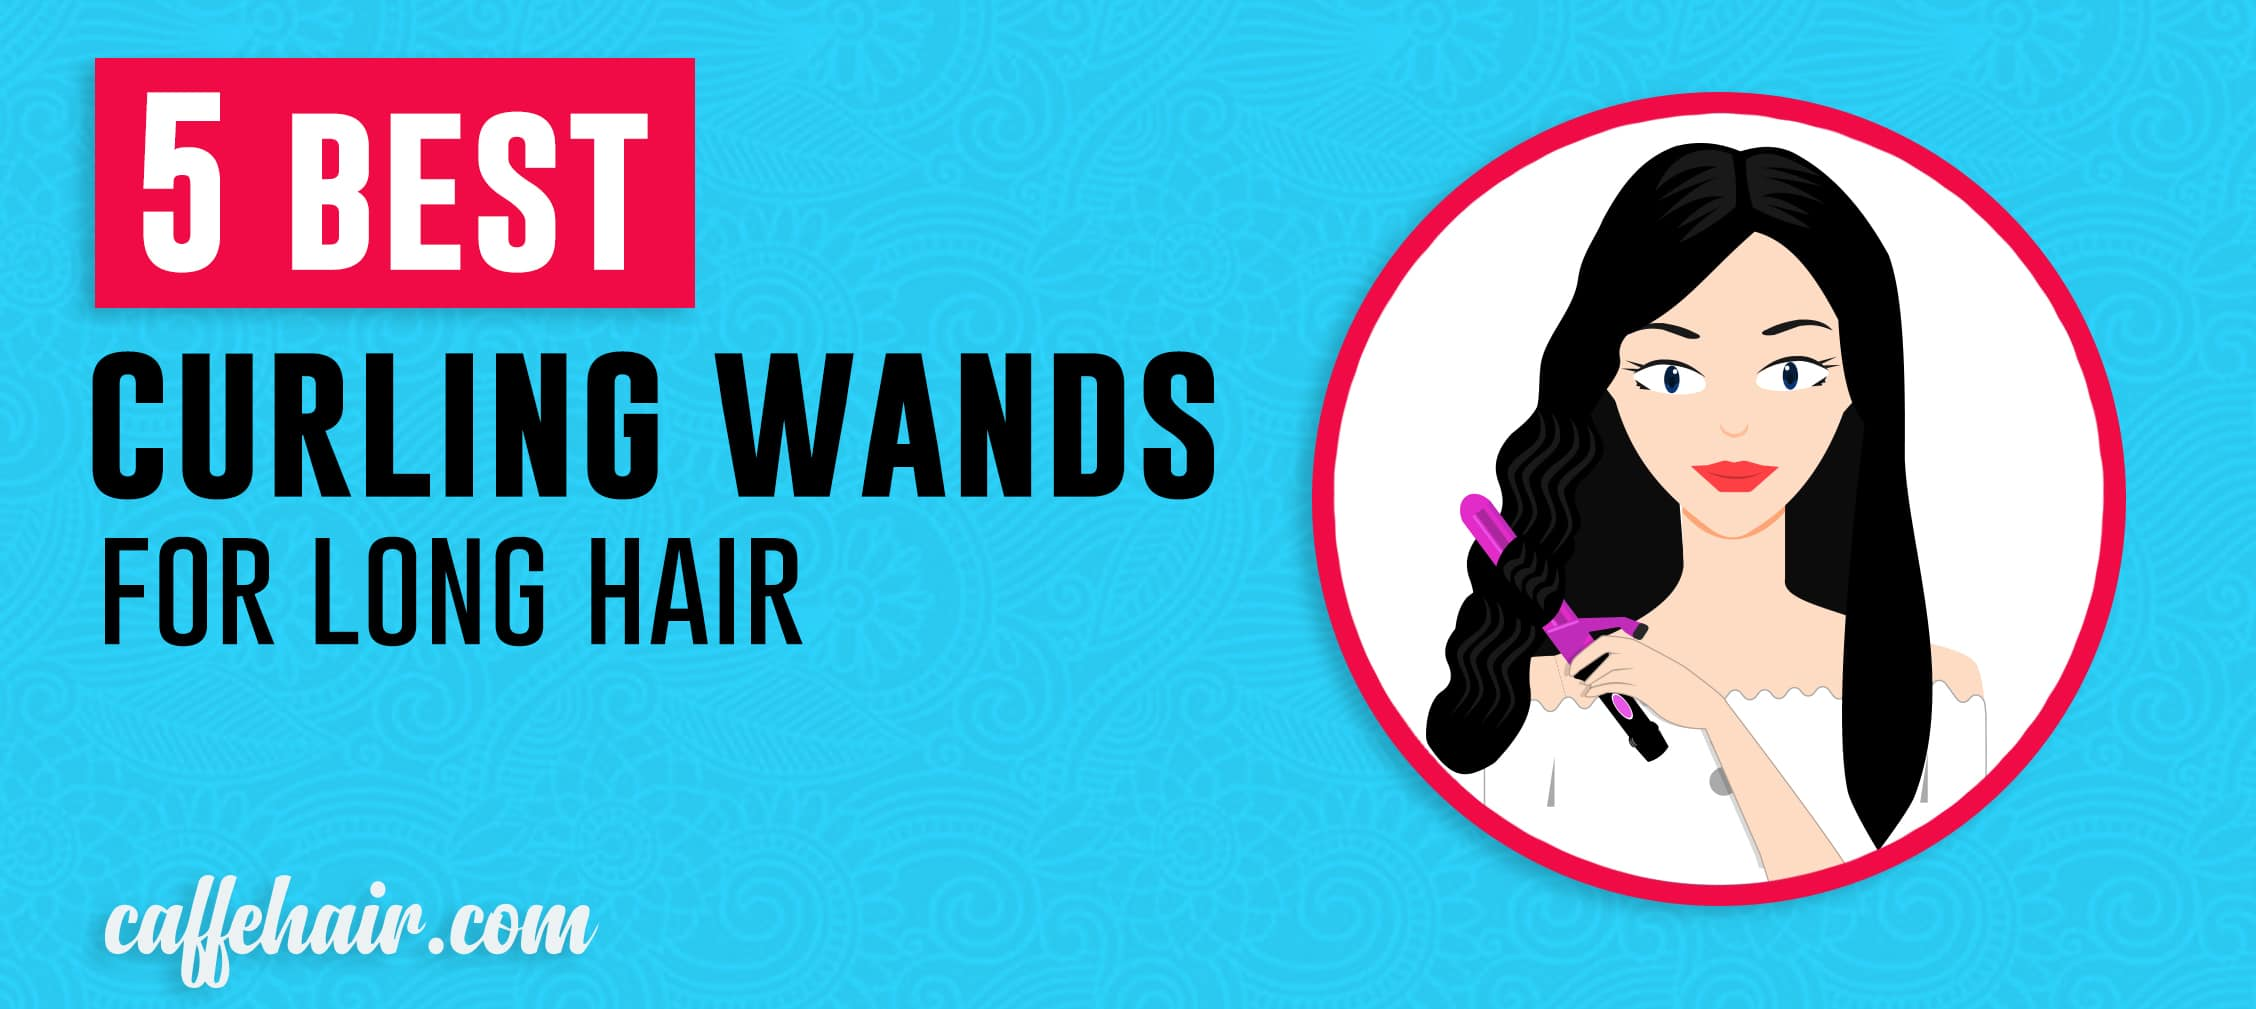 5 Best Curling Wands For Long Hair Caffehair